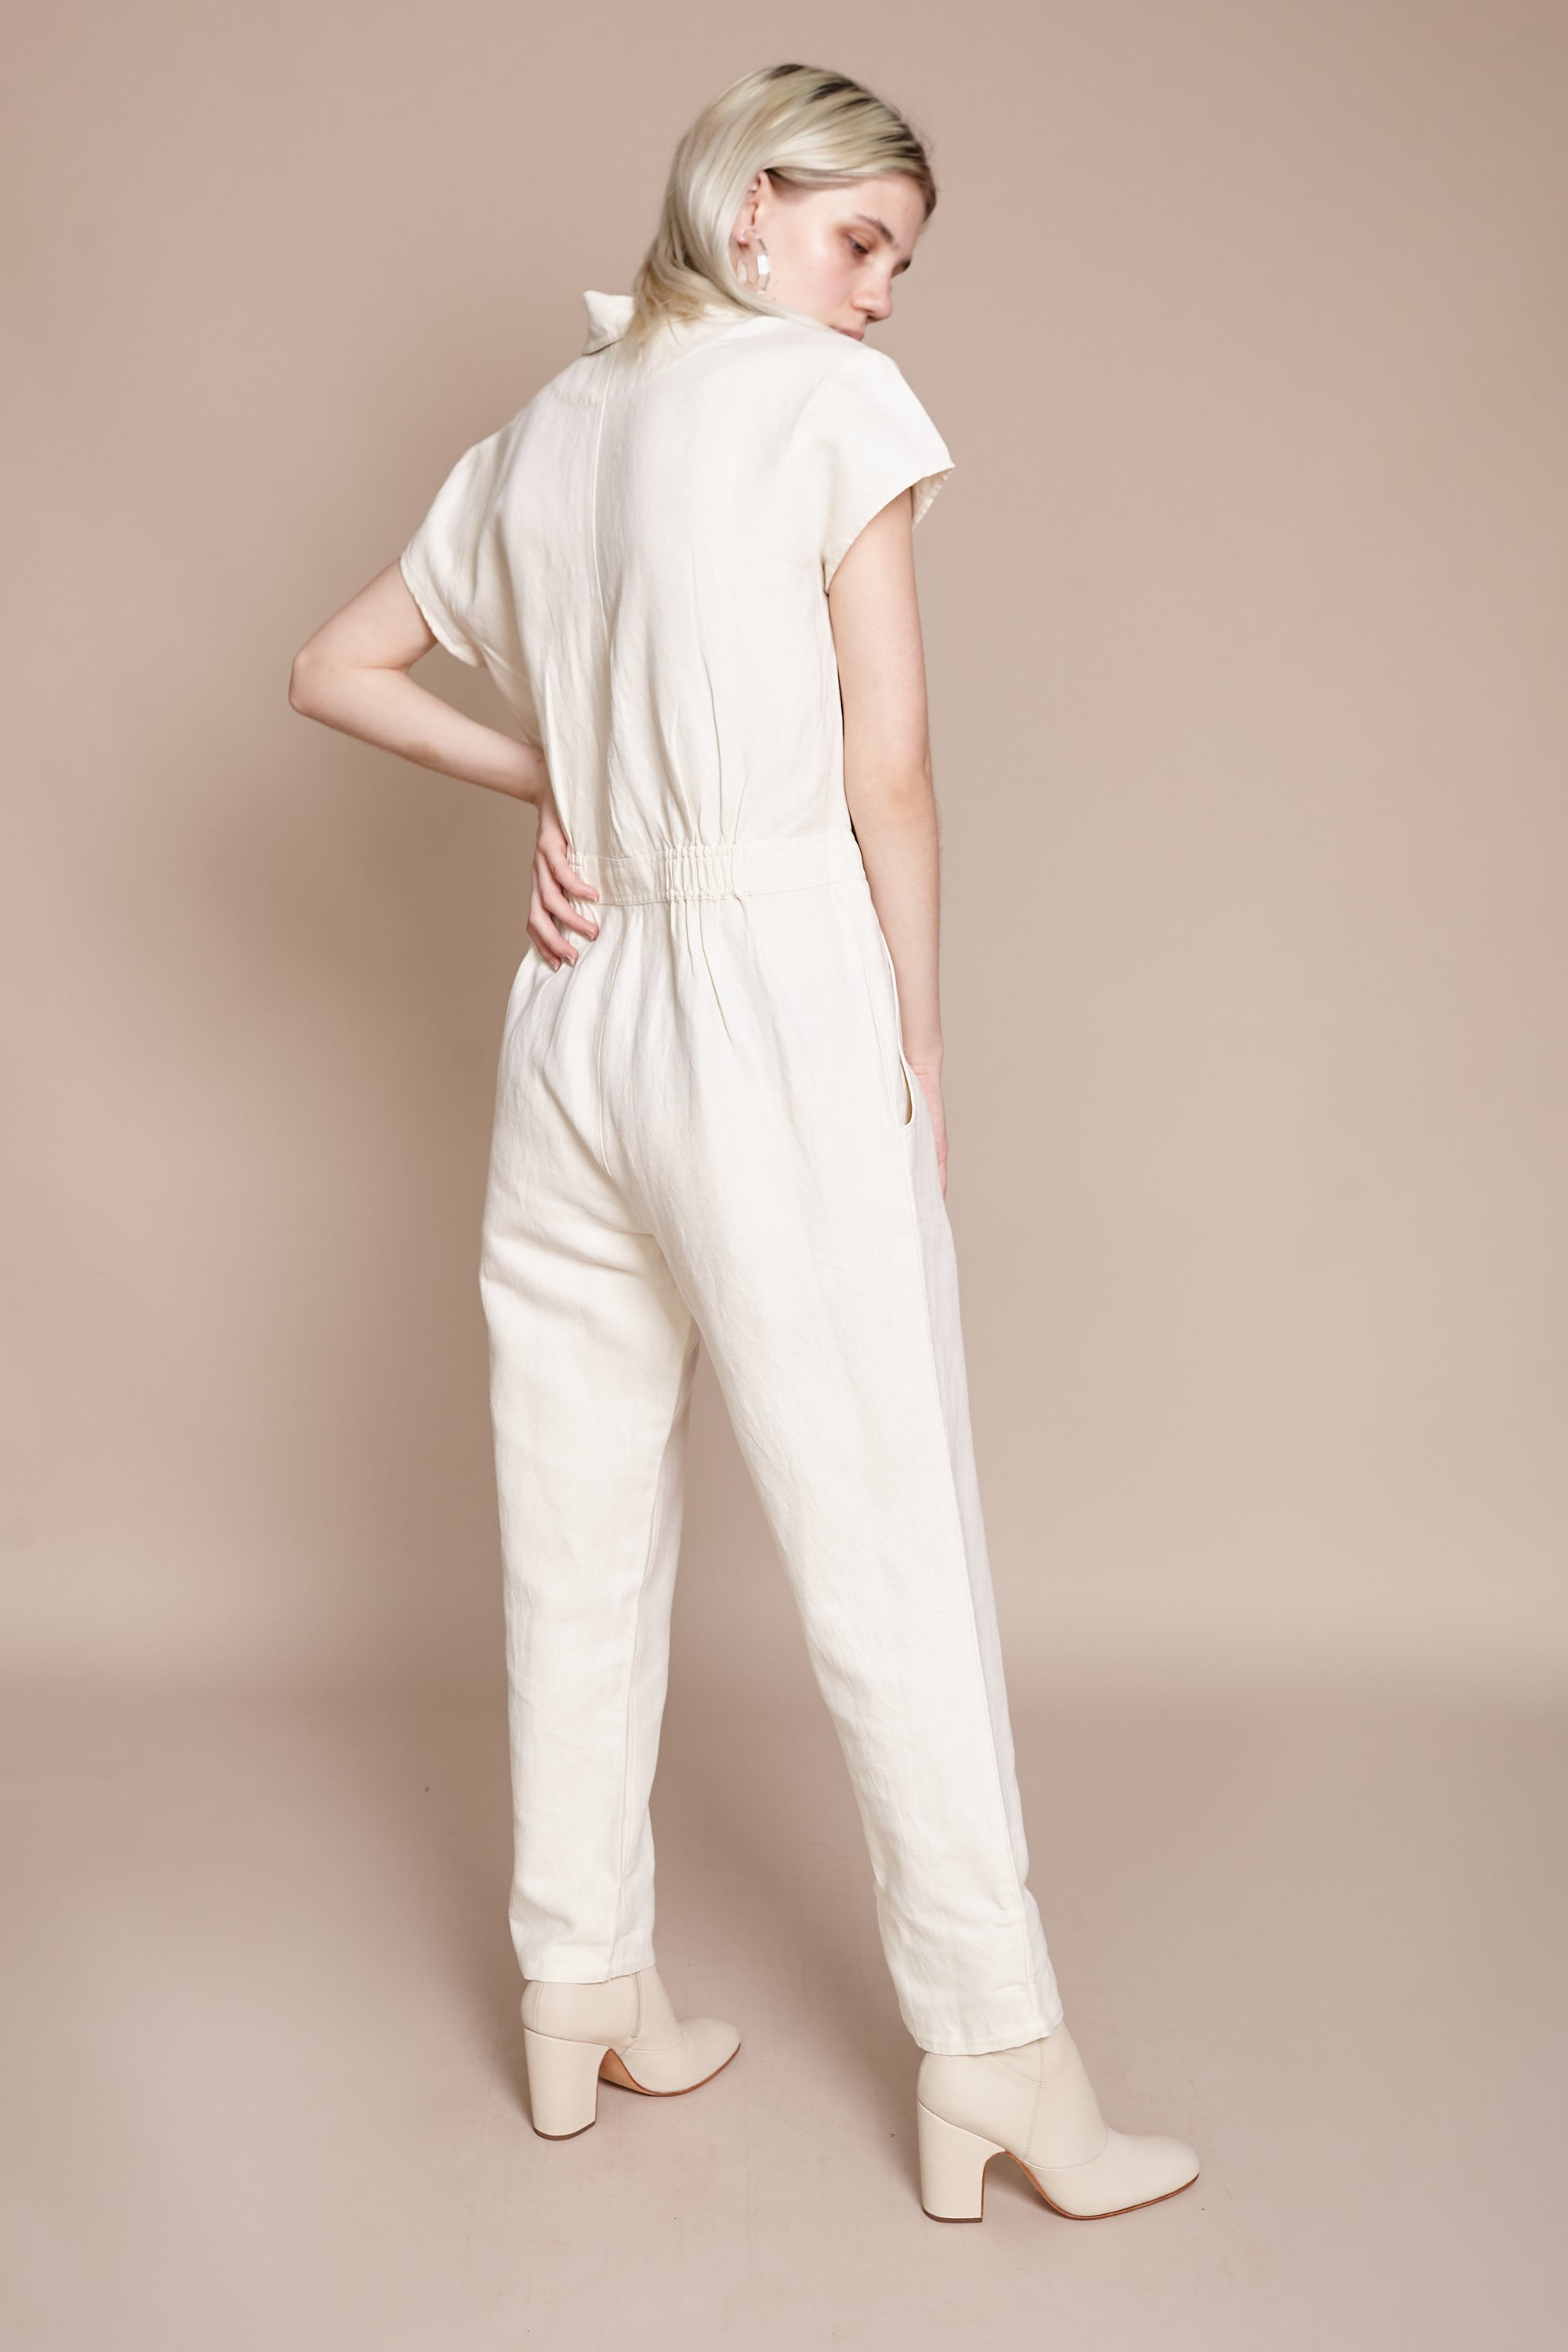 Apiece Apart Azore Jumpsuit in Cream - Vert & Vogue